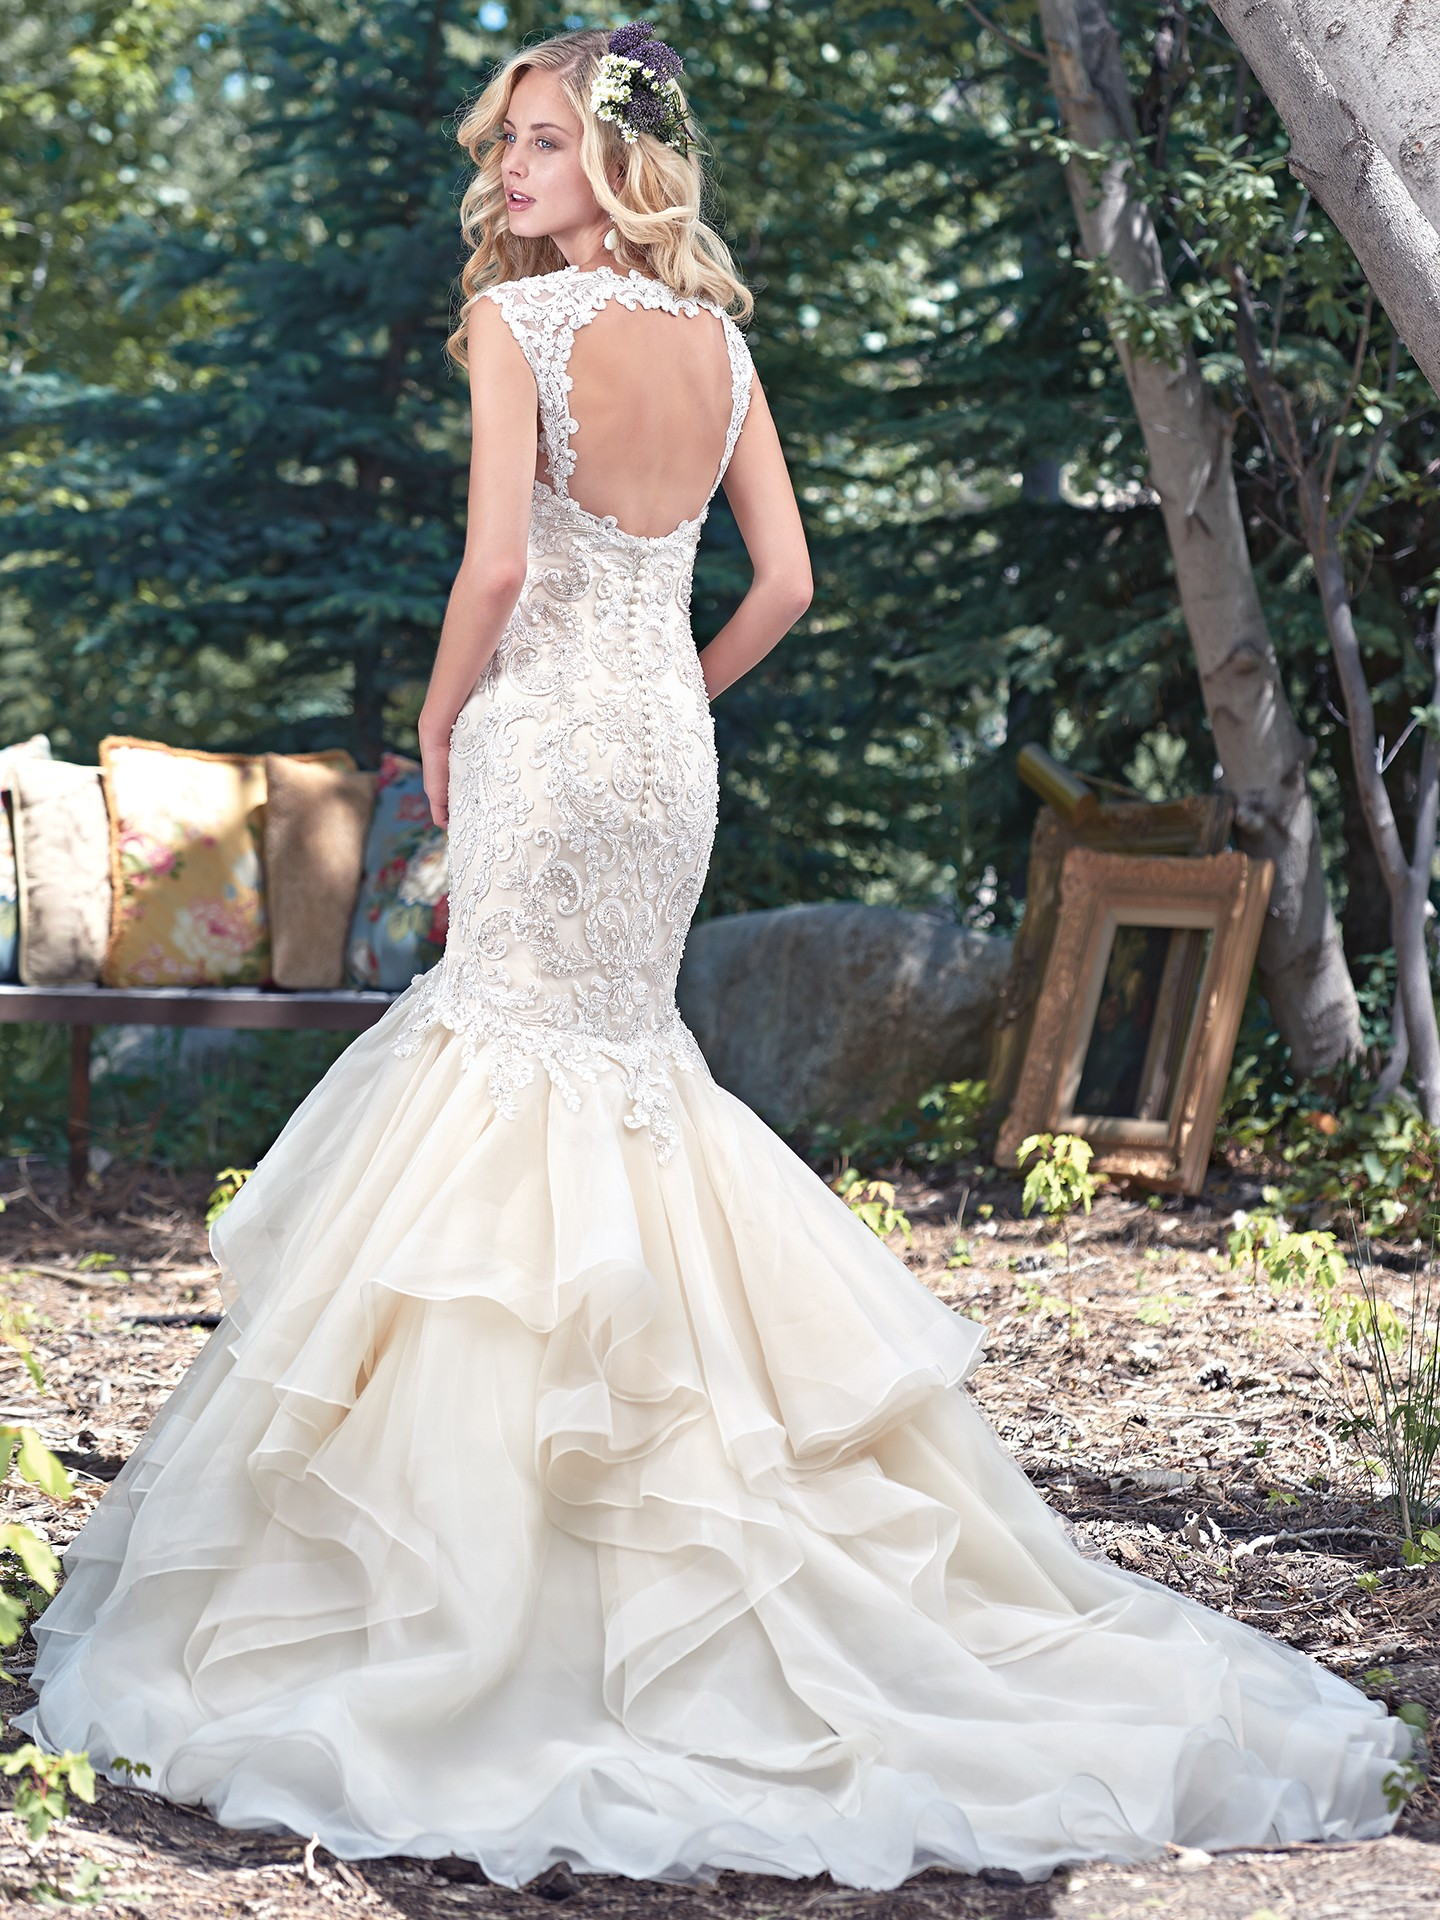 Maggie Sottero's Malina gown hugs all the right curves - Maggie Sottero's Malina fit-and-flare wedding dress